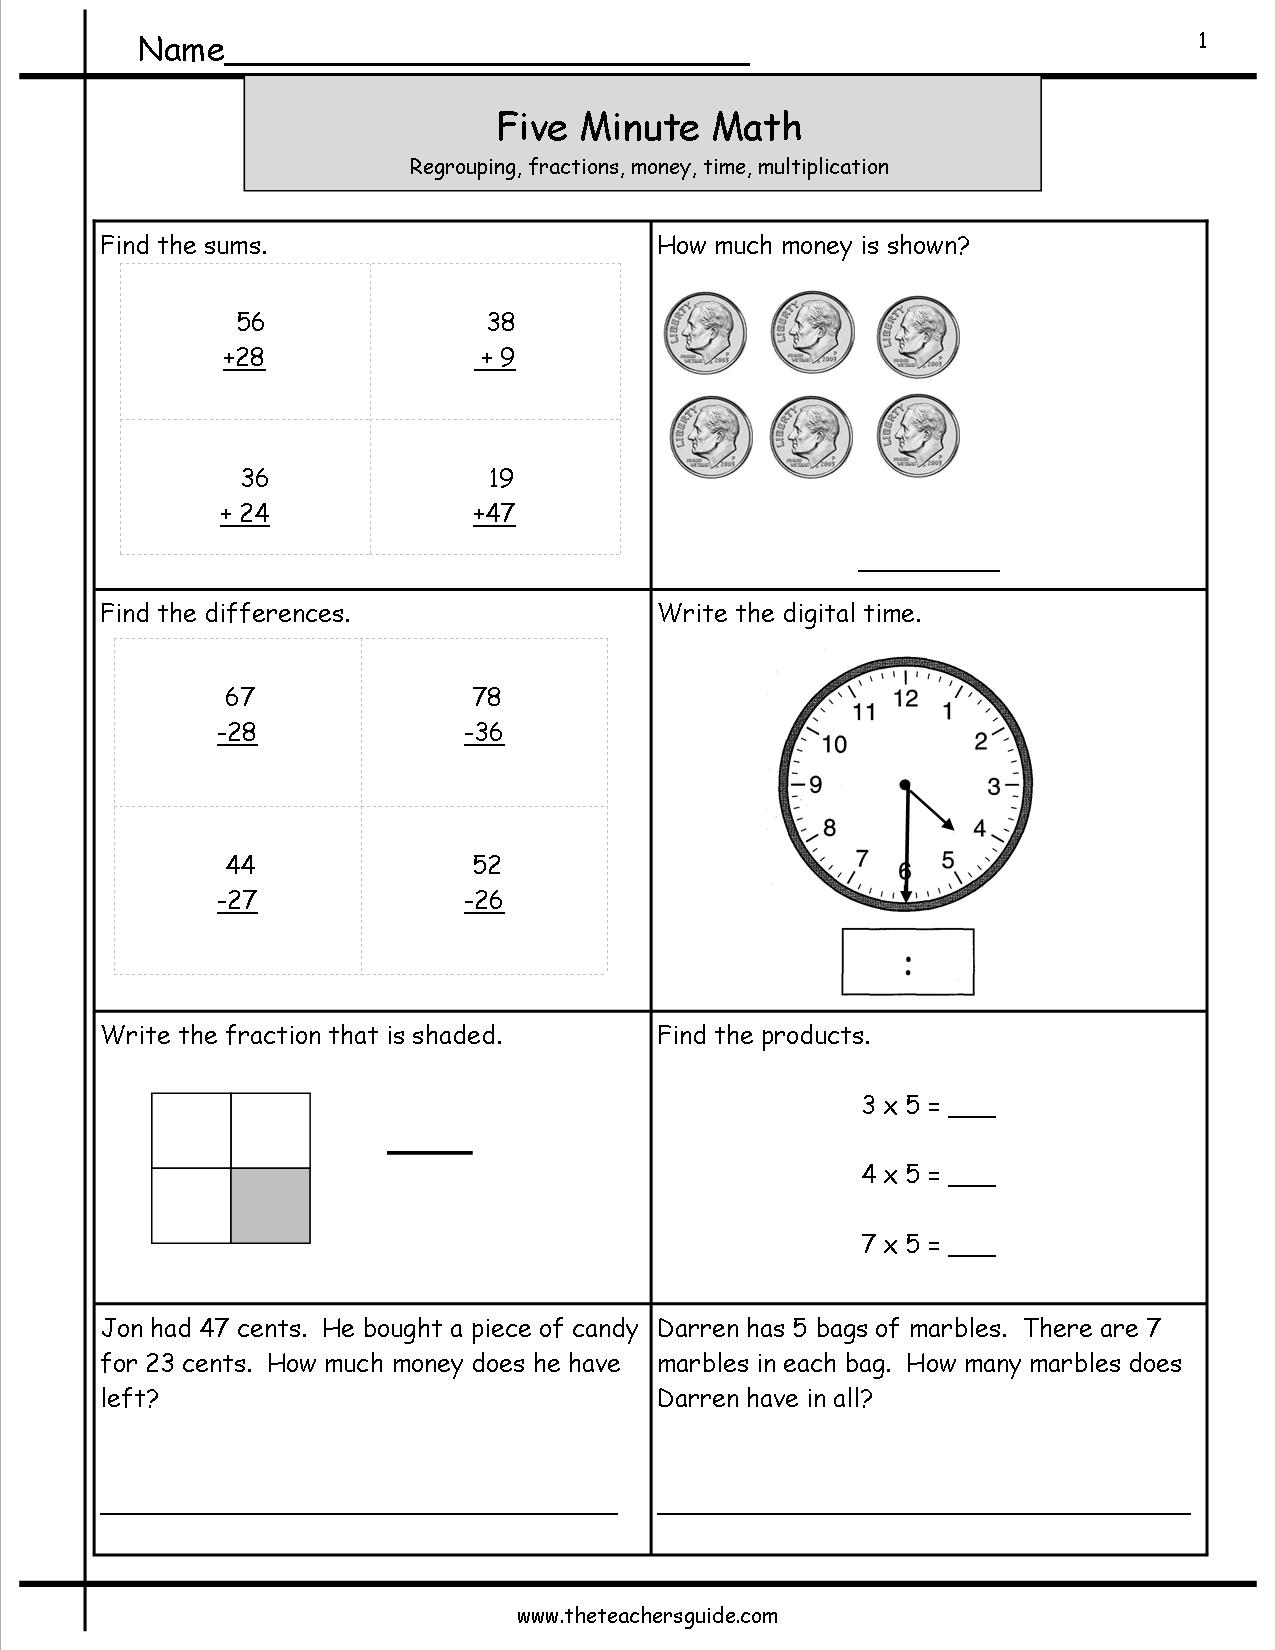 Worksheet Free Math Minute Worksheets free math minute worksheets imperialdesignstudio five review from the teachers guide